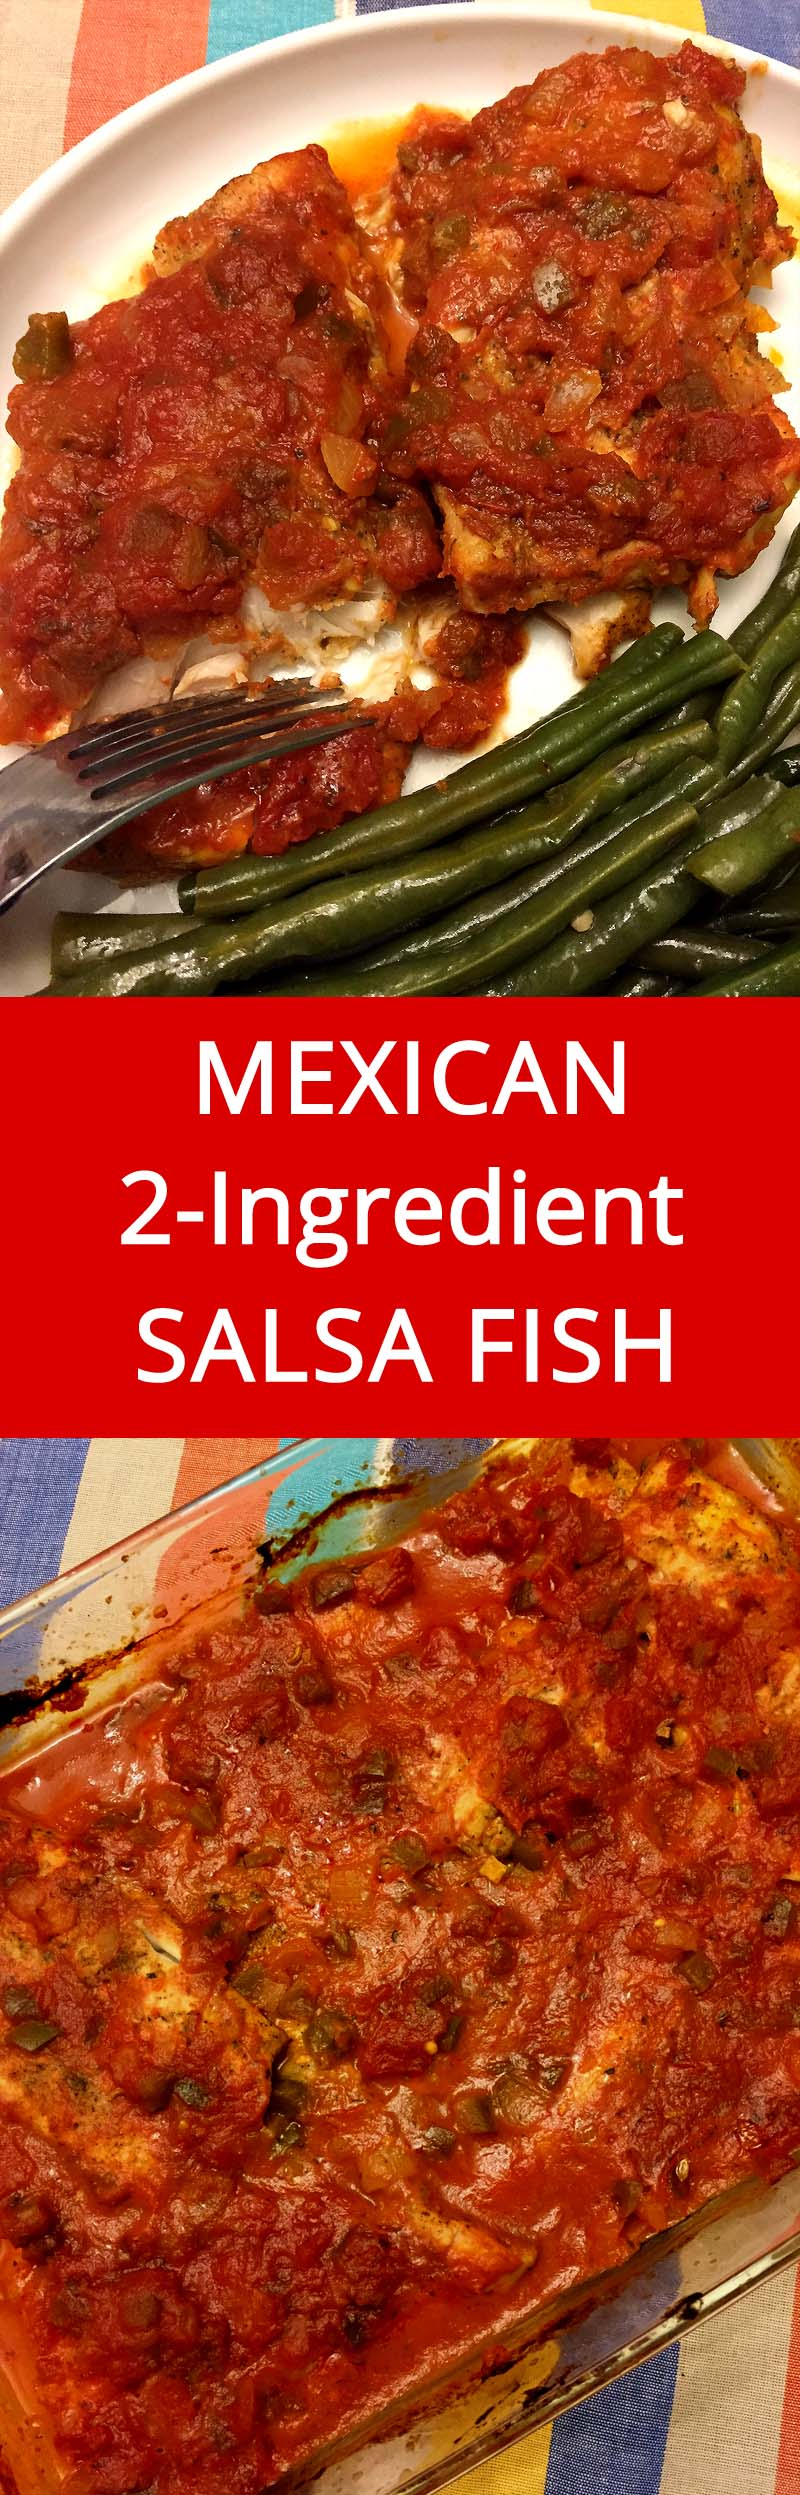 Easy Mexican 2-Ingredient Baked Salsa Fish Recipe - so simple, healthy and always a hit! From MelanieCooks.com